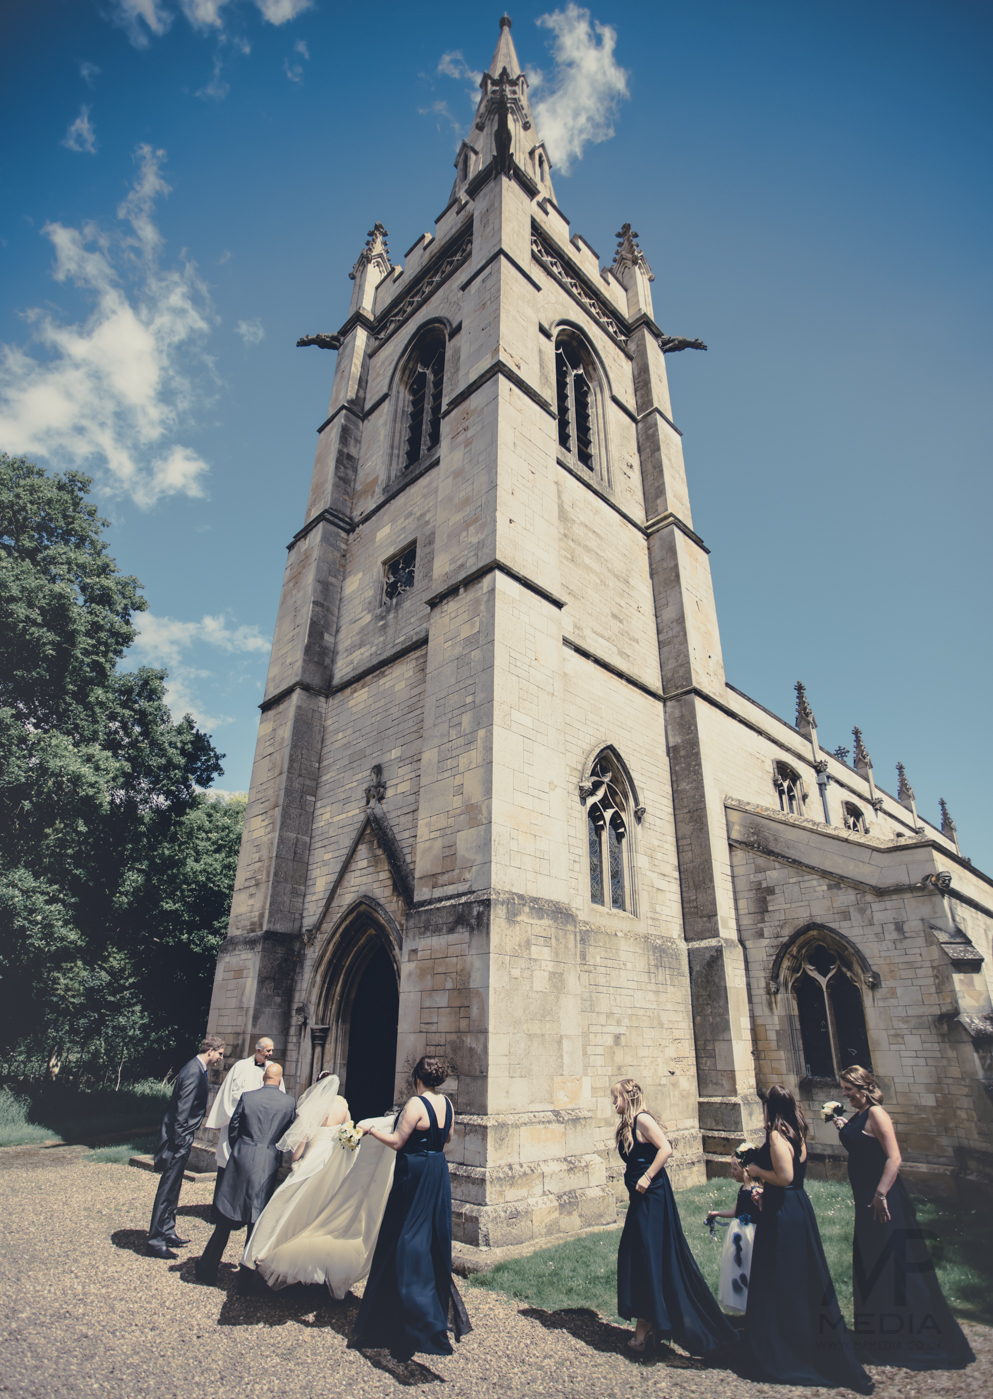 190 - Chris and Natalies Wedding (MAIN) - DO NOT SHARE THIS IMAGES ONLINE -0182.JPG